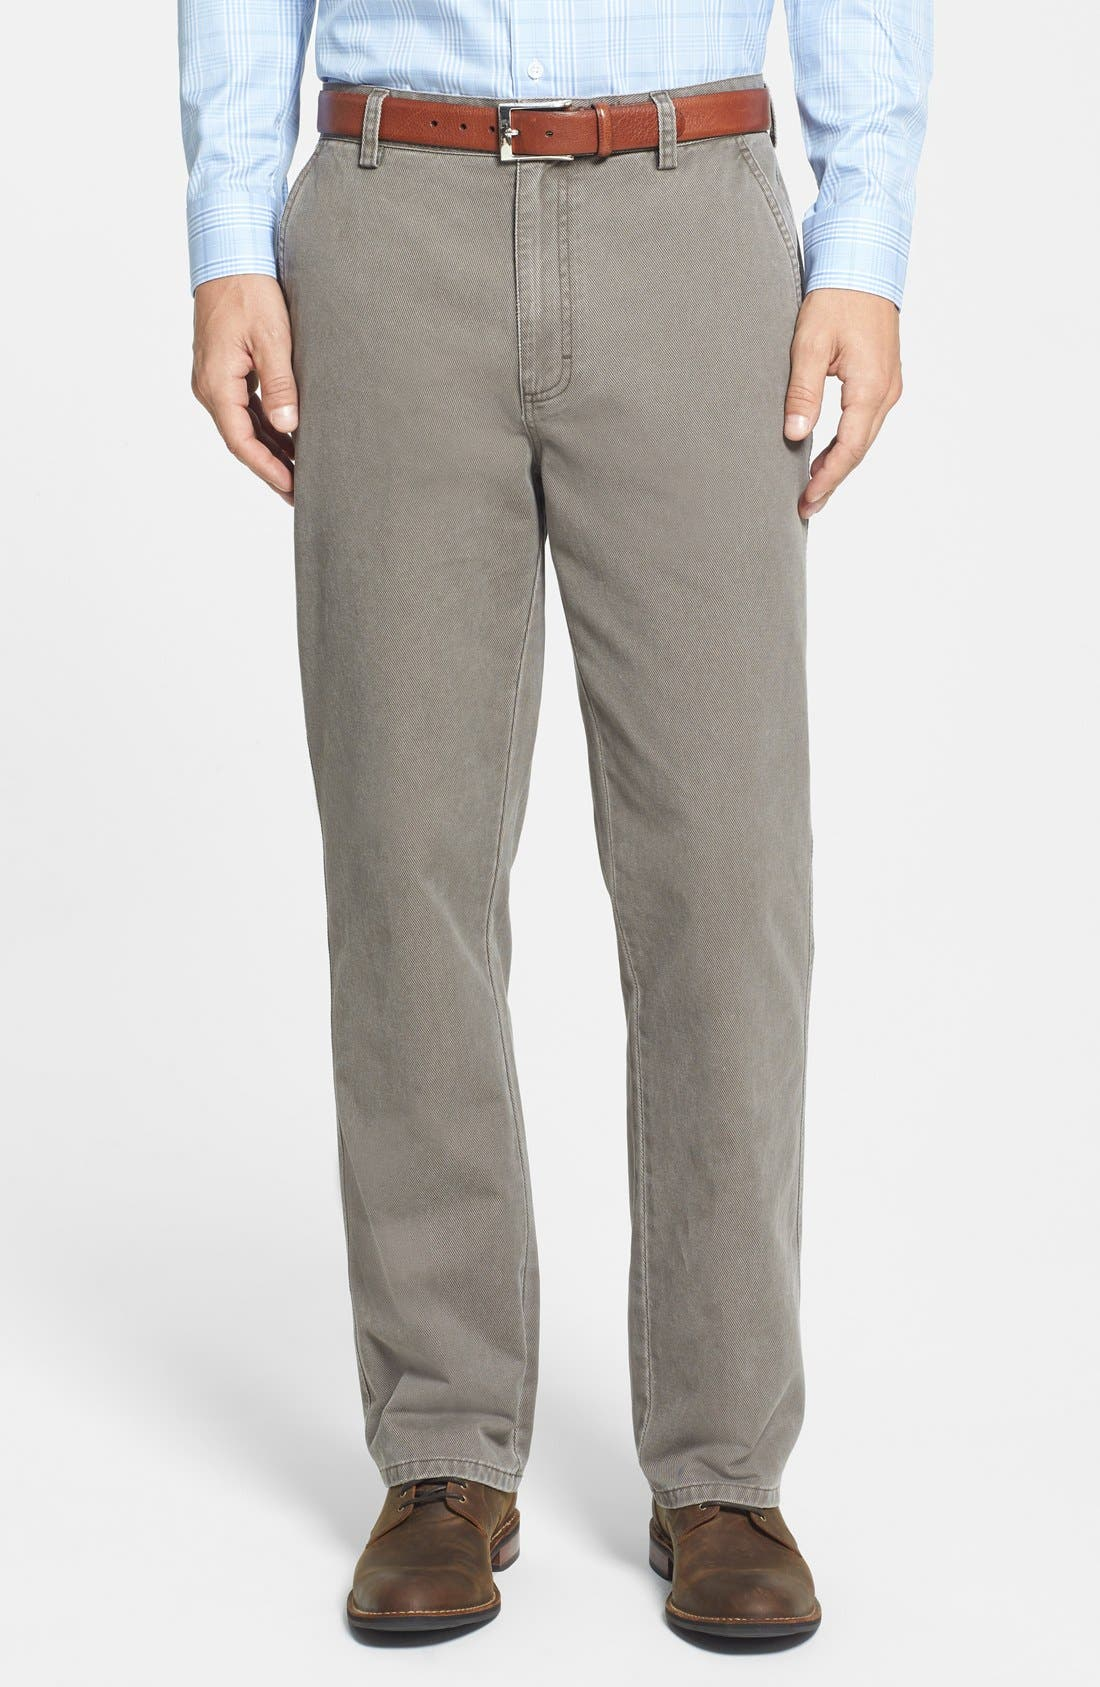 Main Image - Cutter & Buck Curtis Flat Front Five-Pocket Cotton Twill Pants